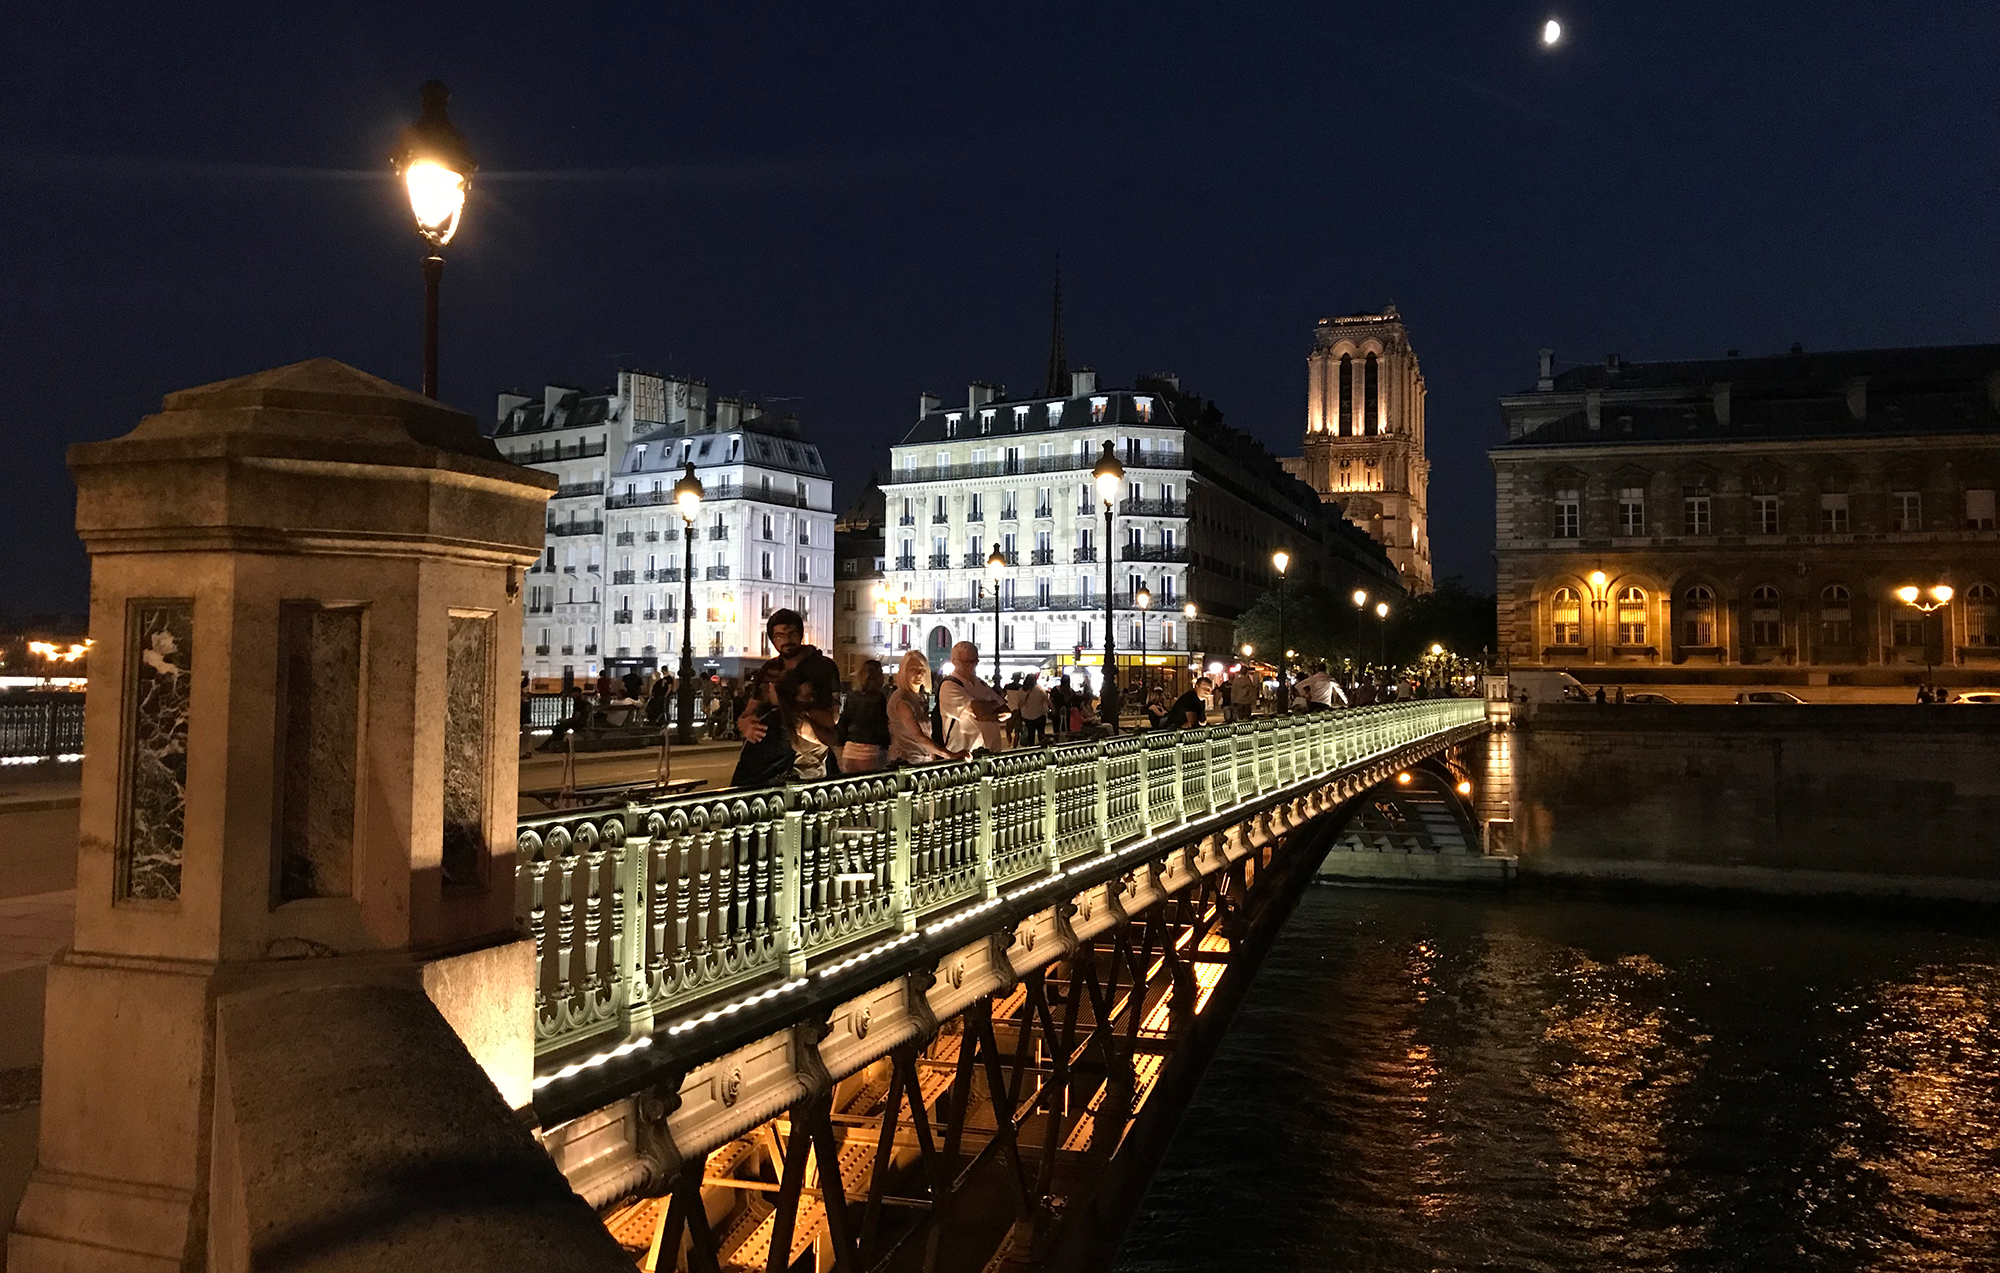 photo of a bridge over the Seine in Paris, France in the evening by A.E. Graves